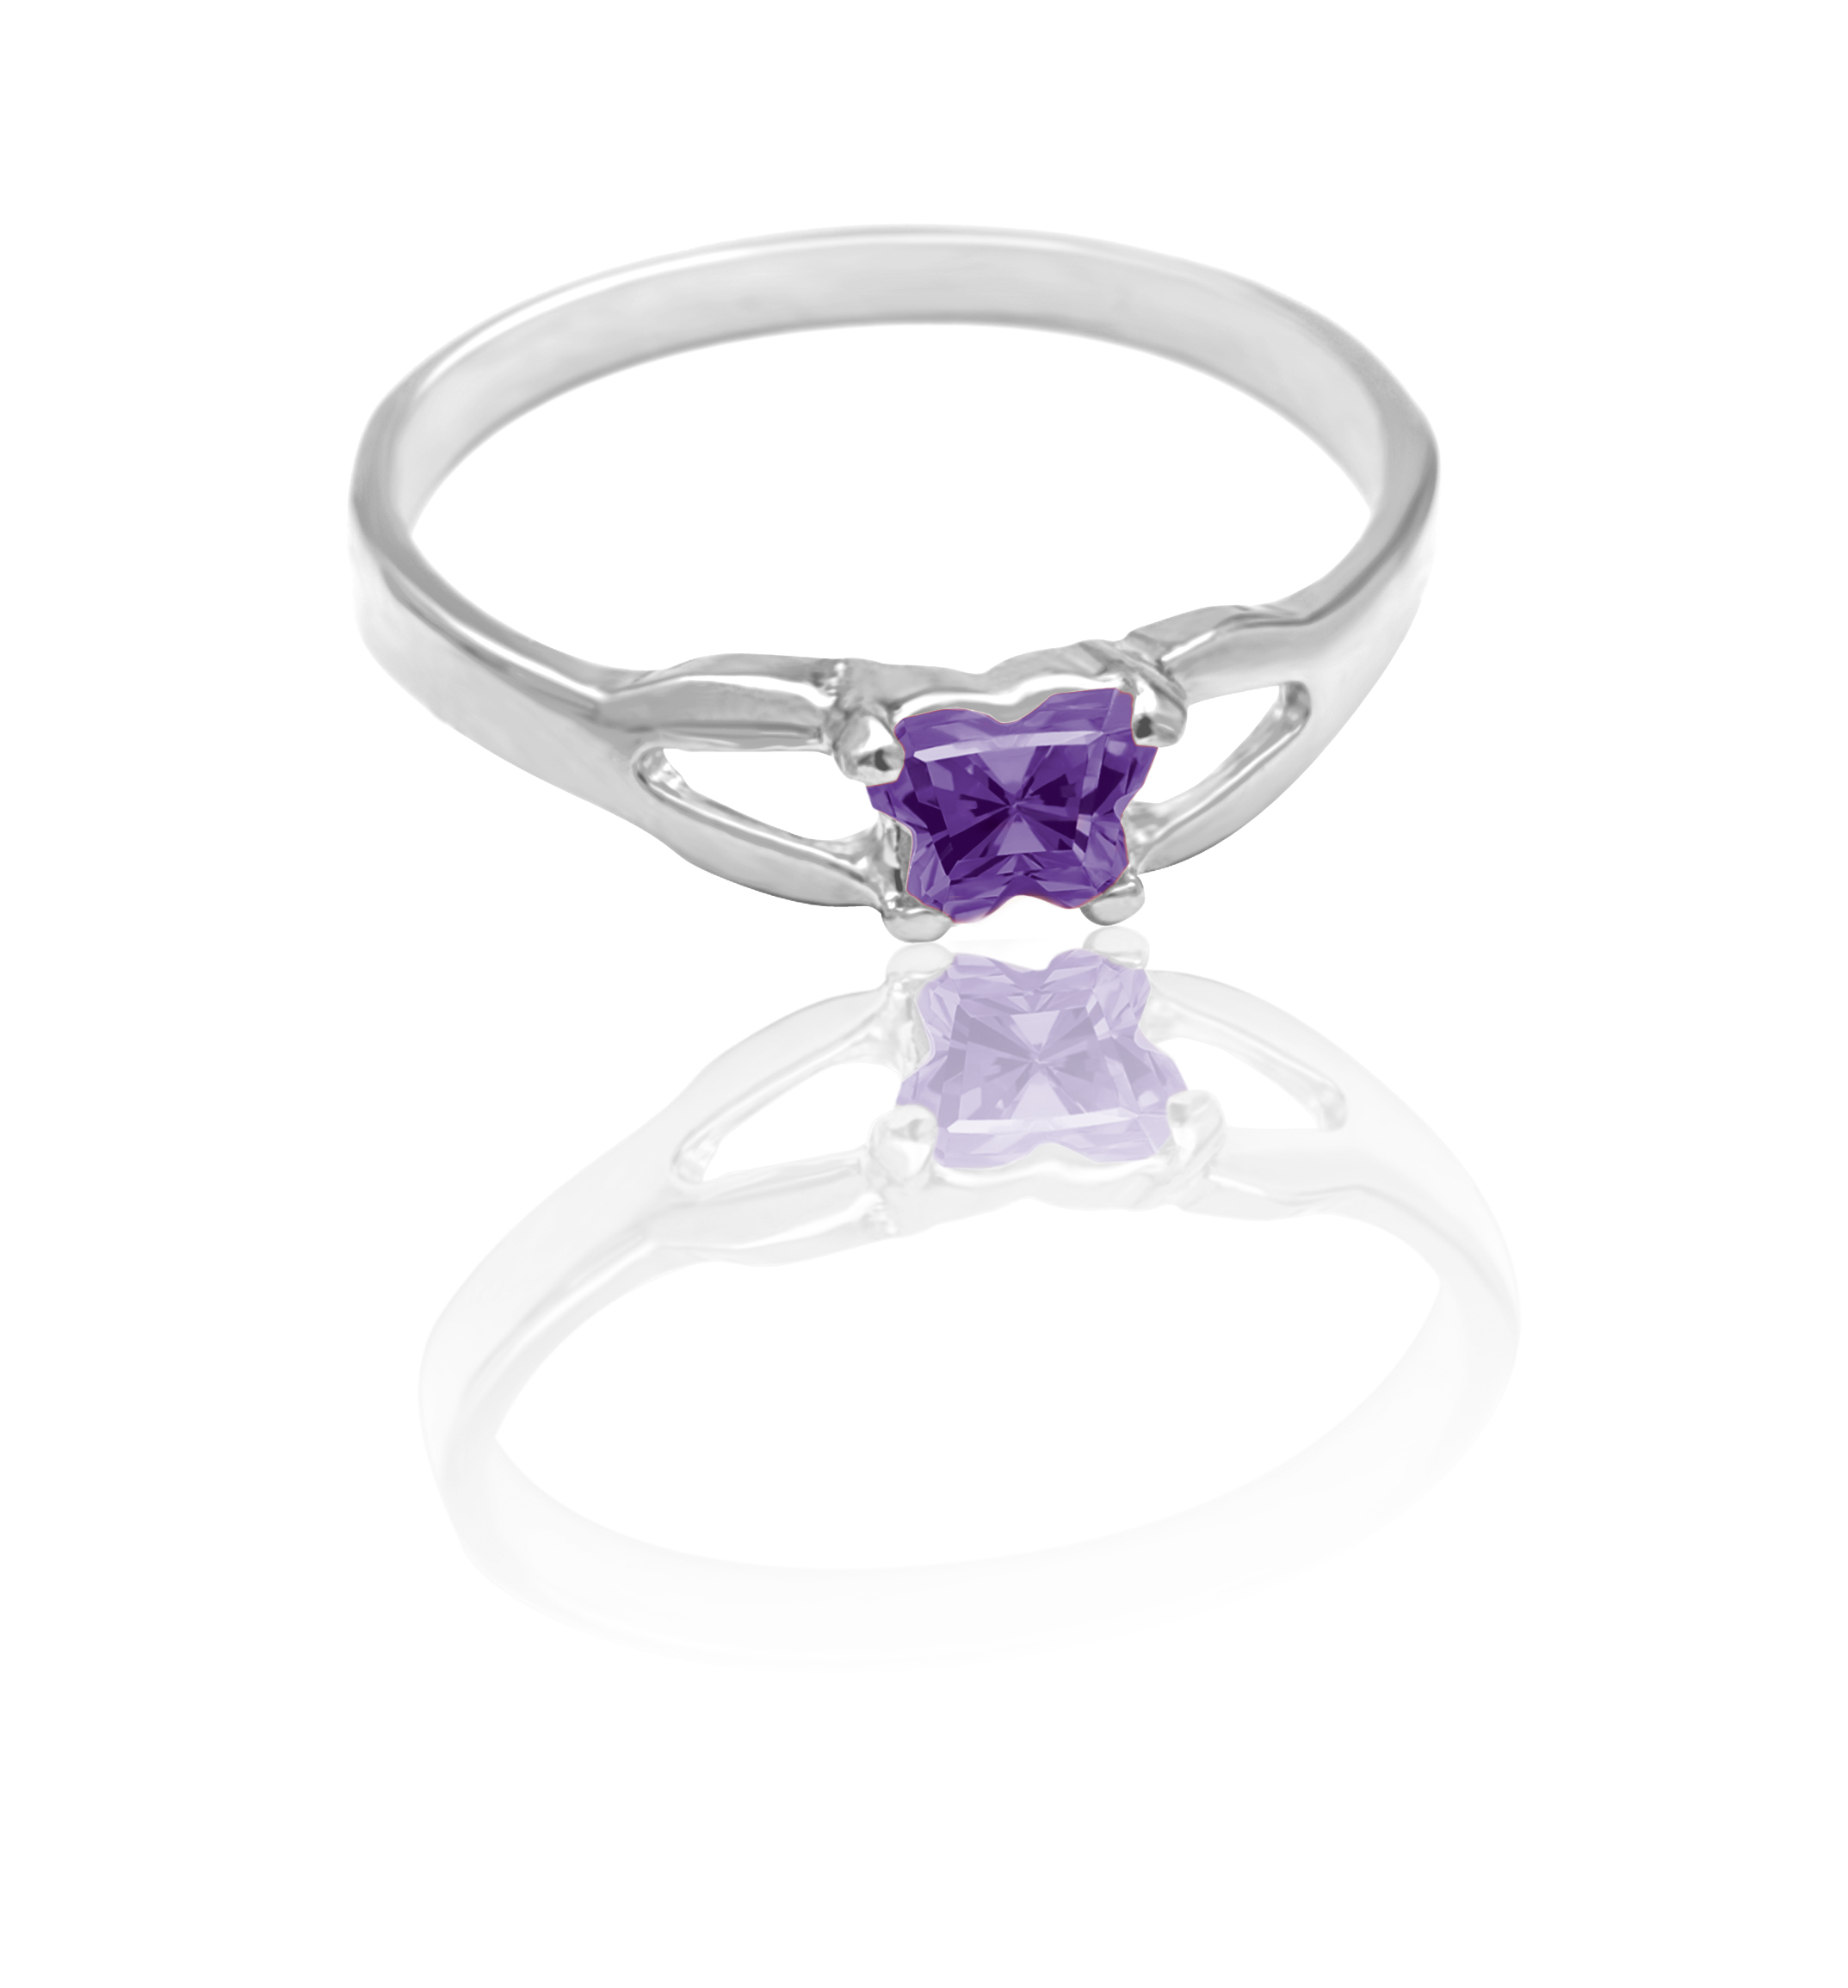 children's ring in sterling silver with purple cubic zirconia (month of February)*